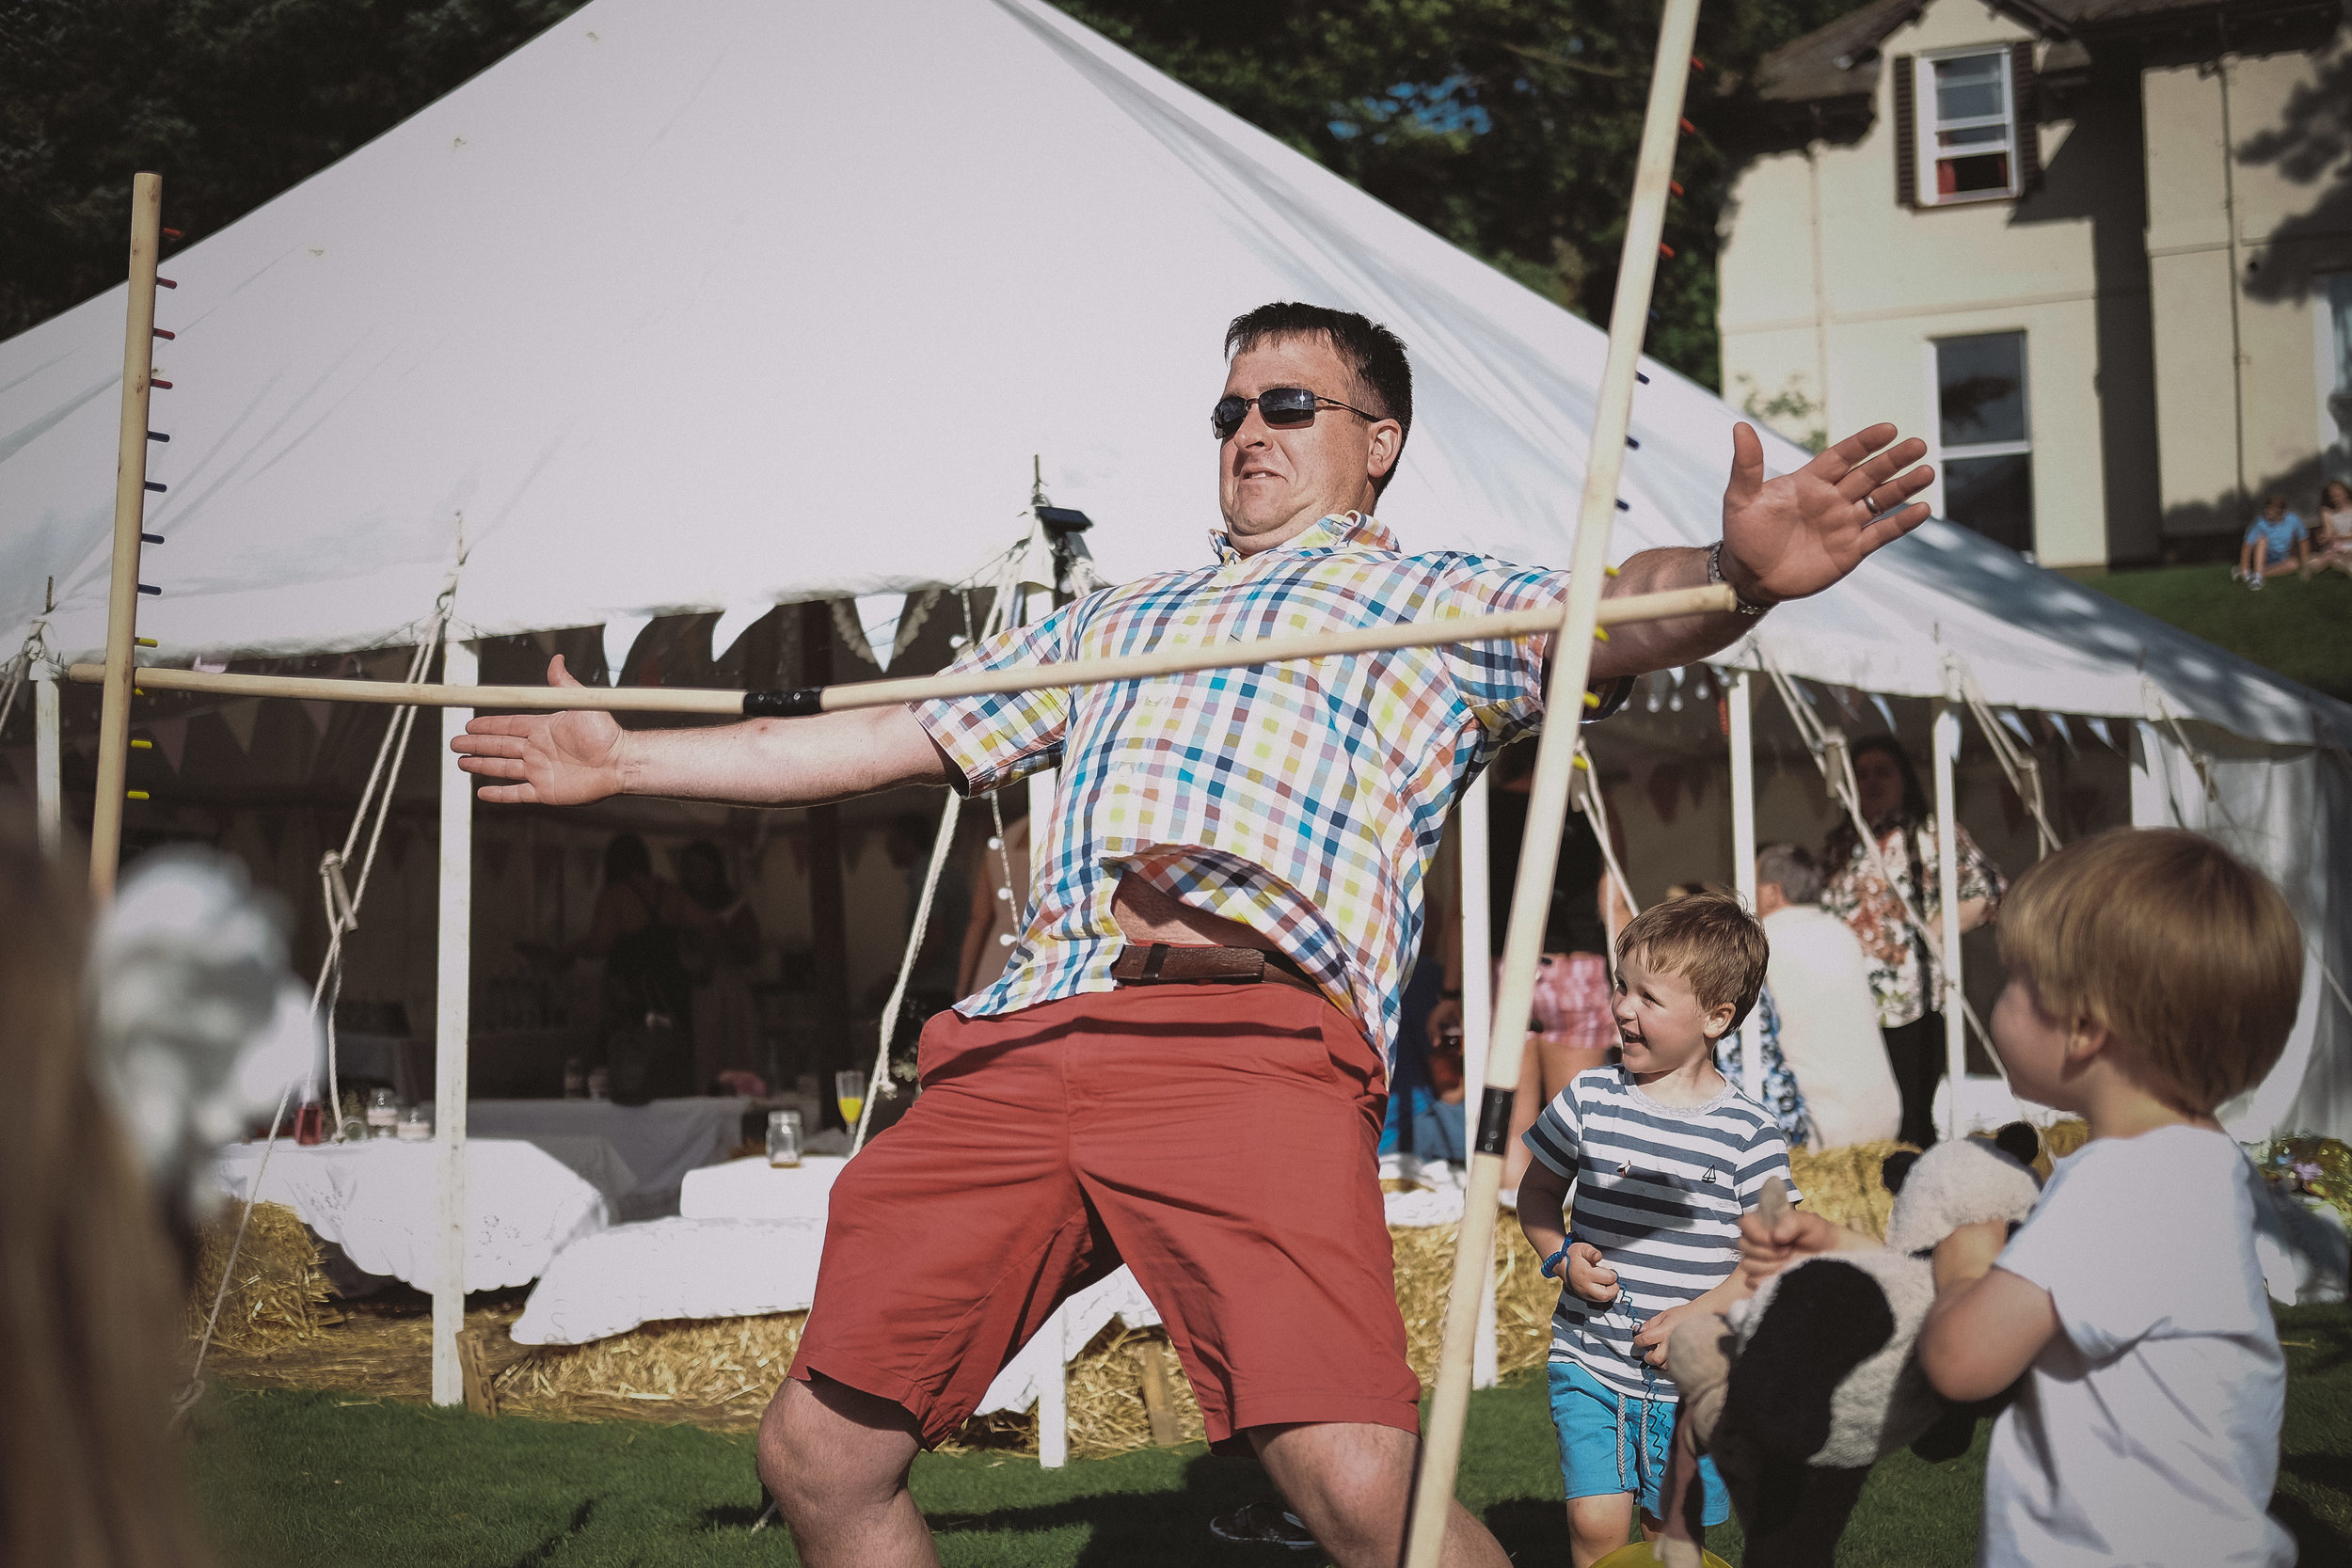 A wedding guest limbo dances at Julia and Darren's Lake District wedding by Barry Forshaw